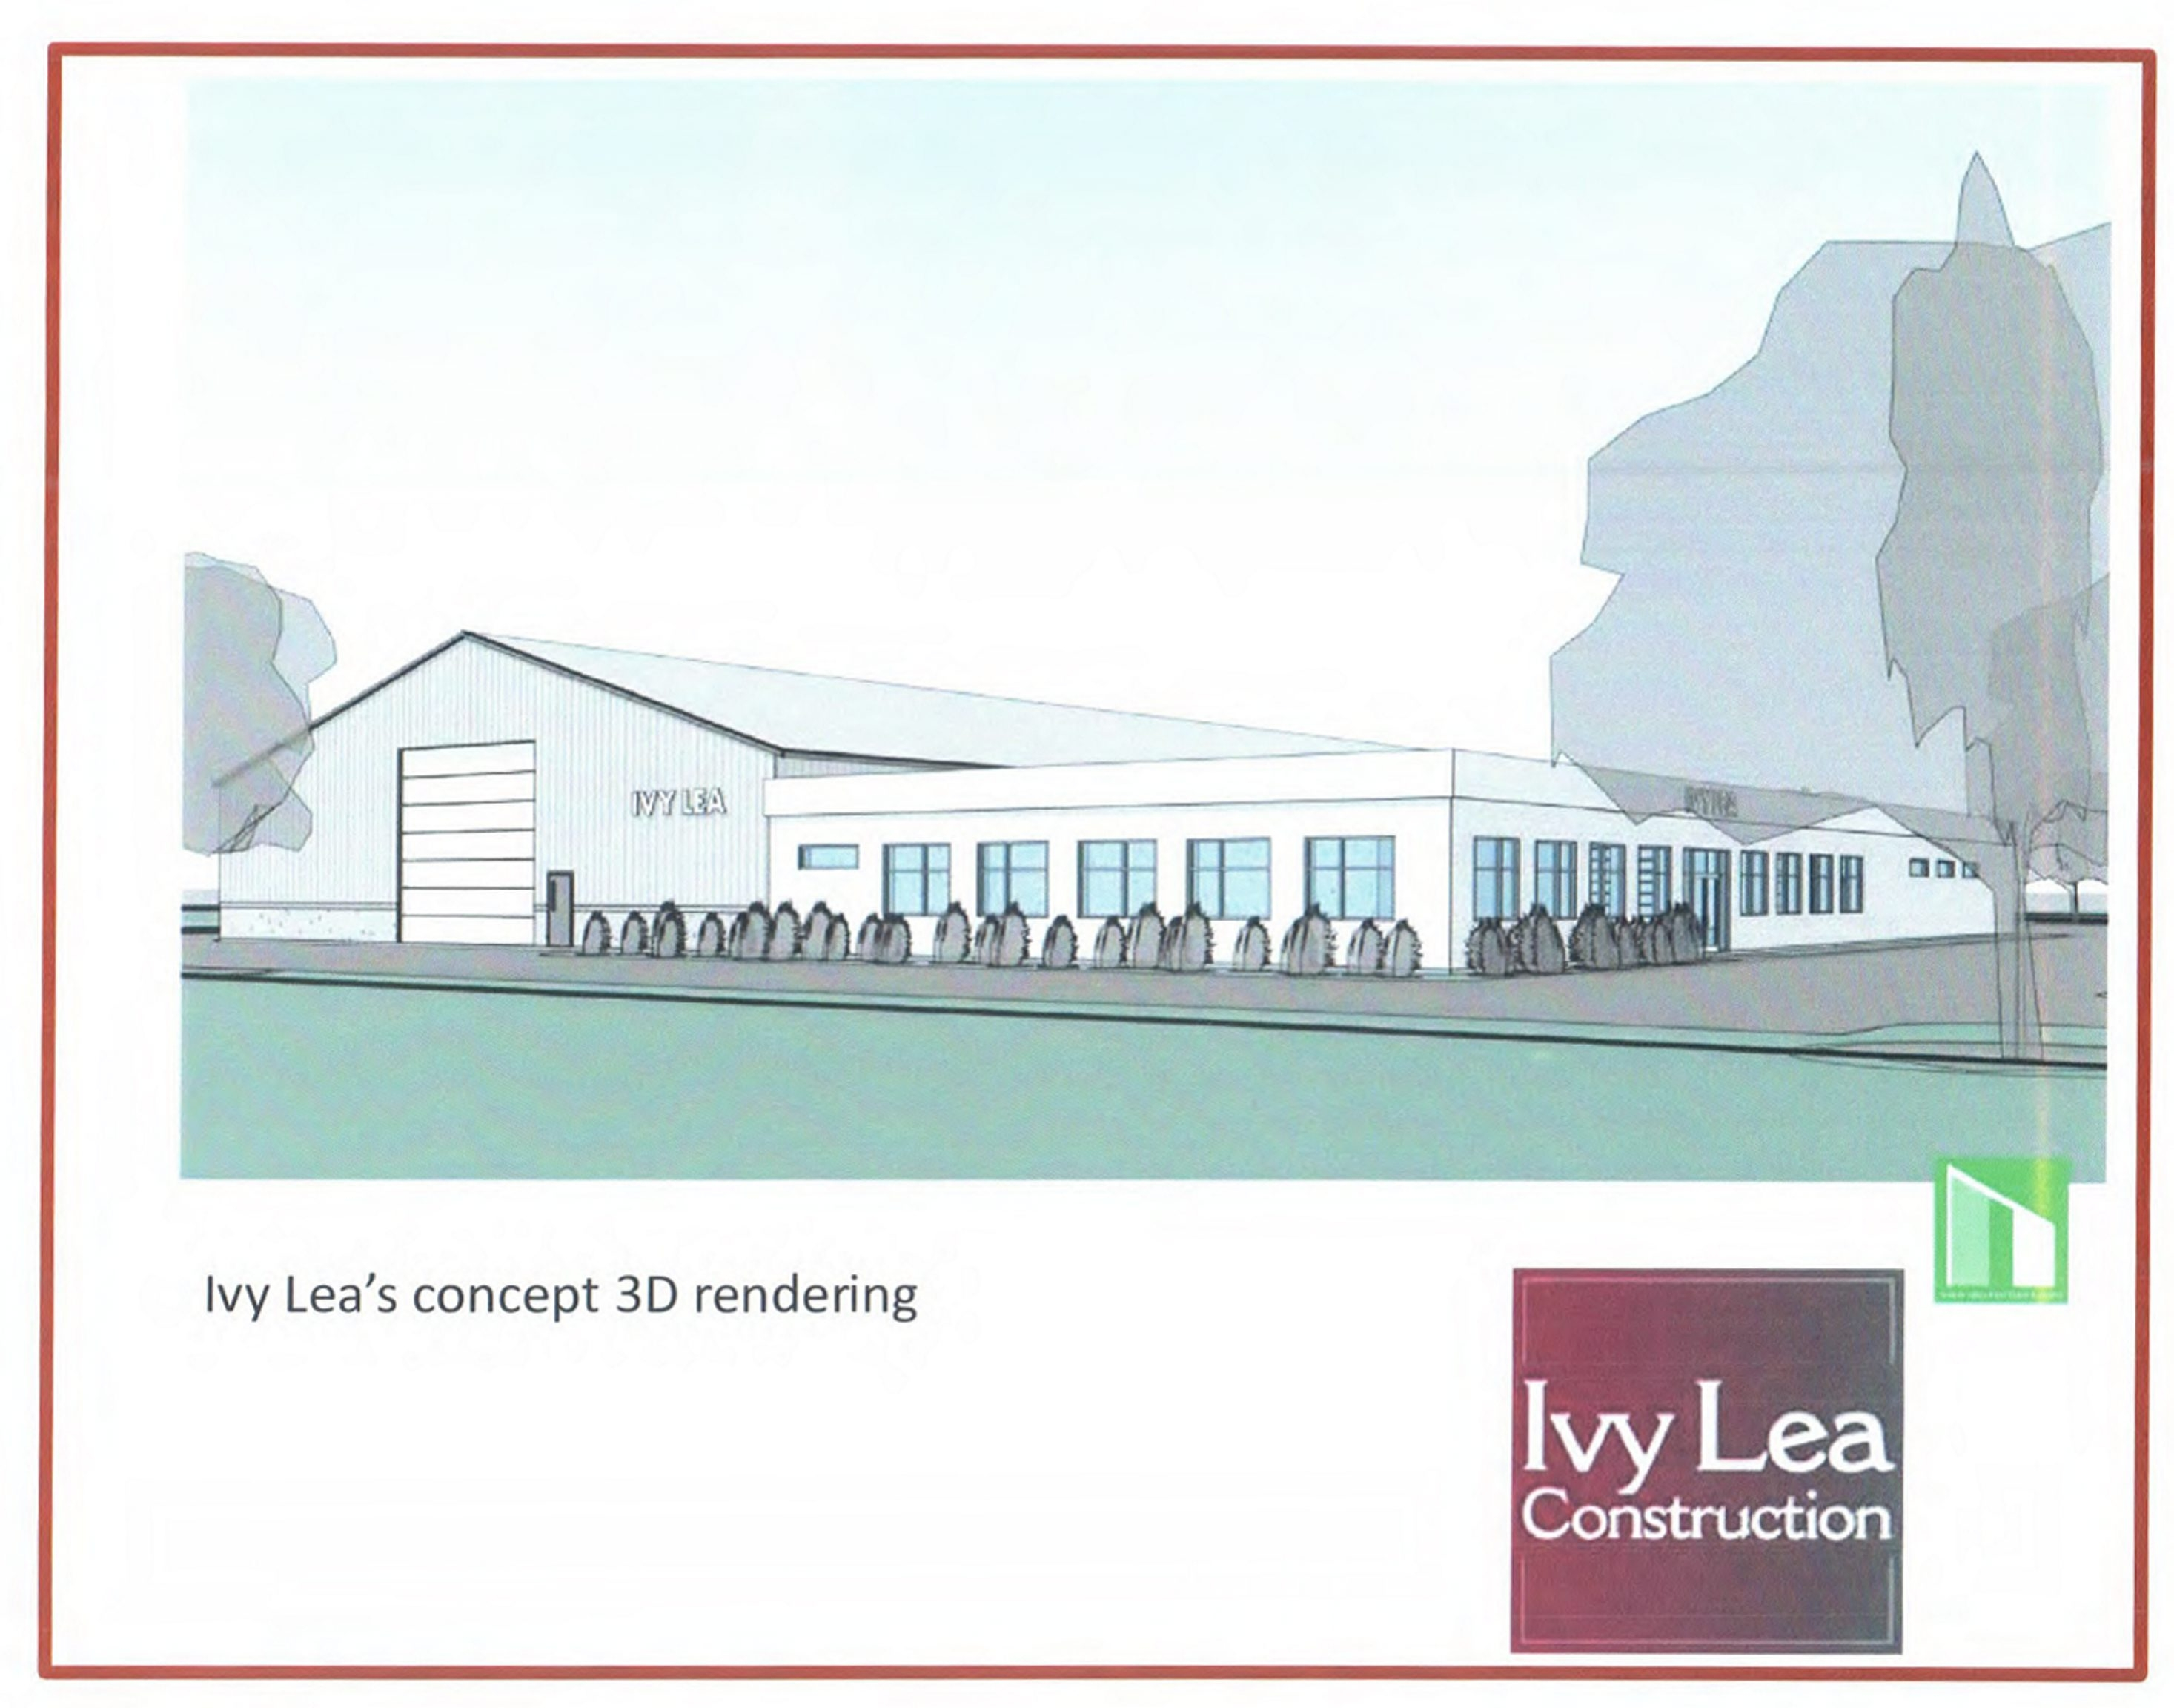 This architectural rendering shows the new Ivy Lea Construction headquarters and warehouse building planned for North Tonawanda.